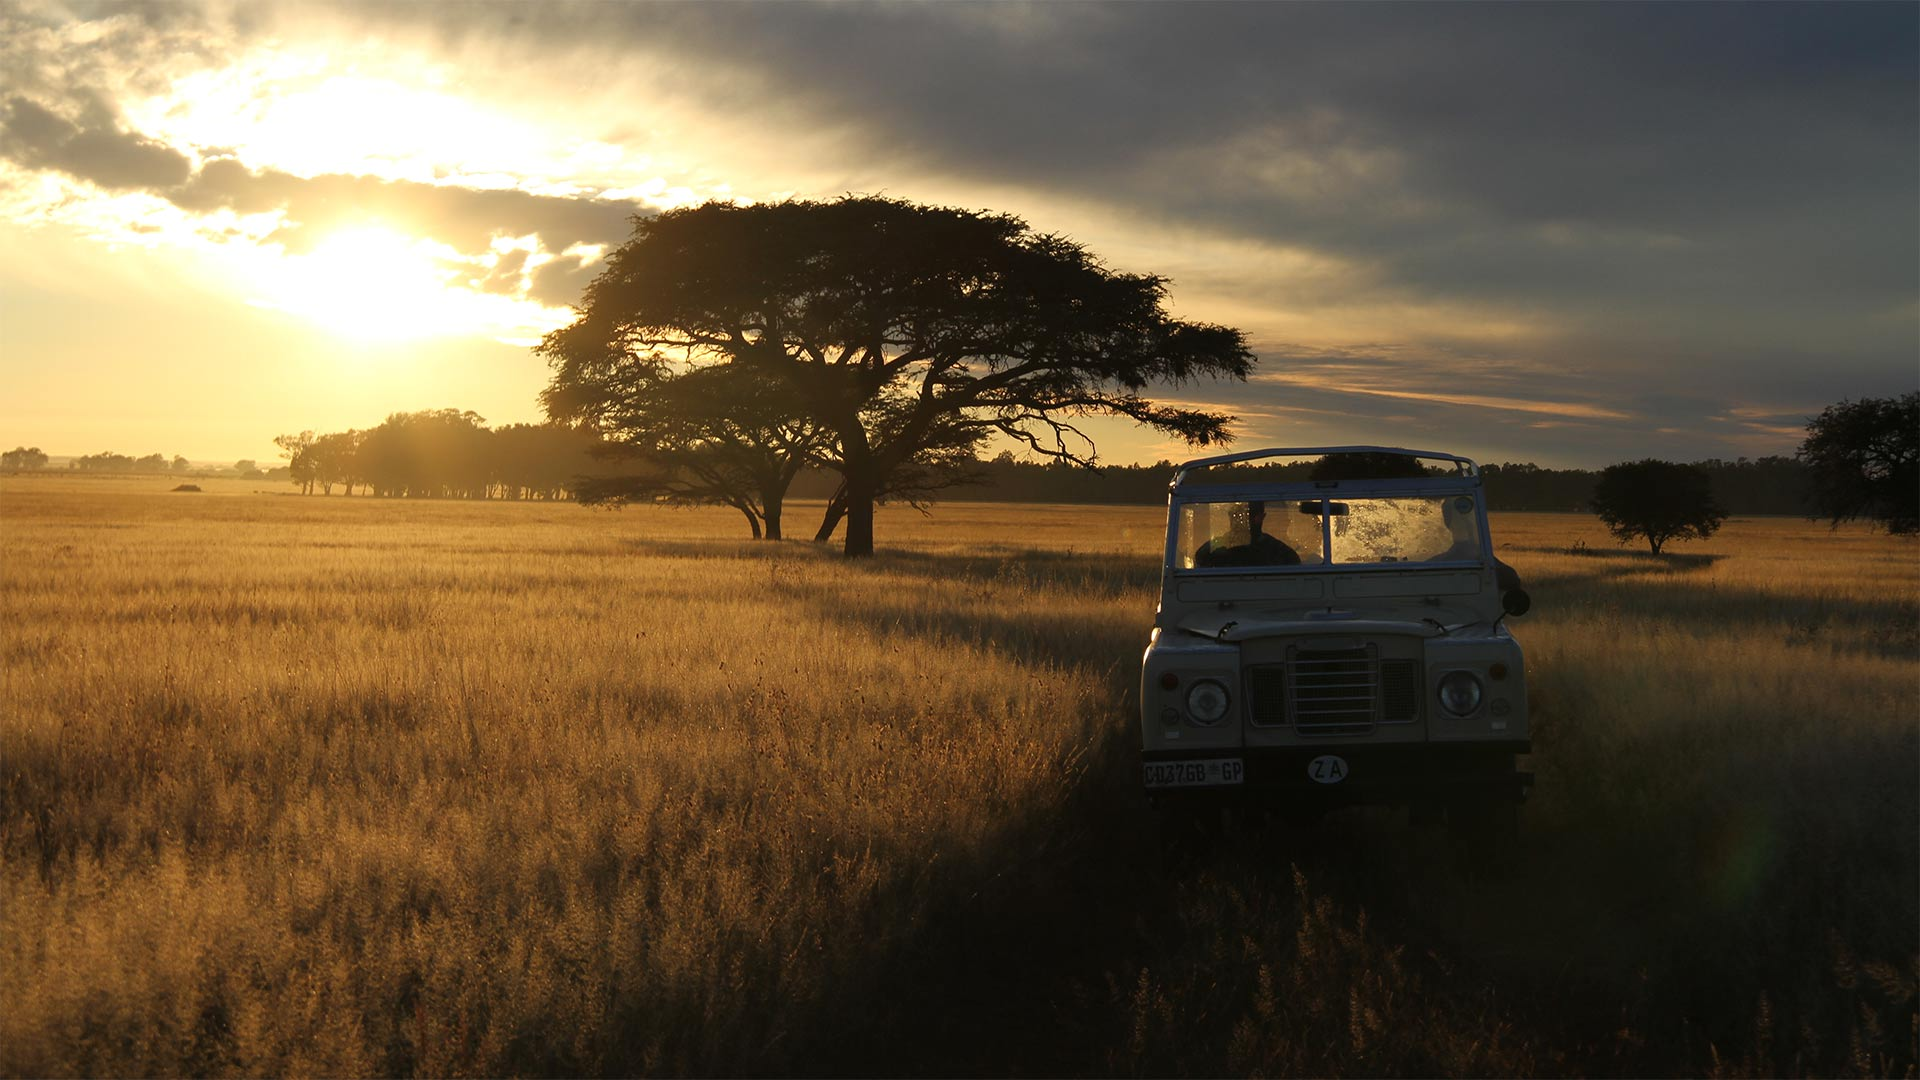 Biologist Tony Sinclair (Greg Kriek) gets taken out for morning drive through the Serengeti. Lindbergh Lodge, Wolmaransstad, North-West Province, South Africa.